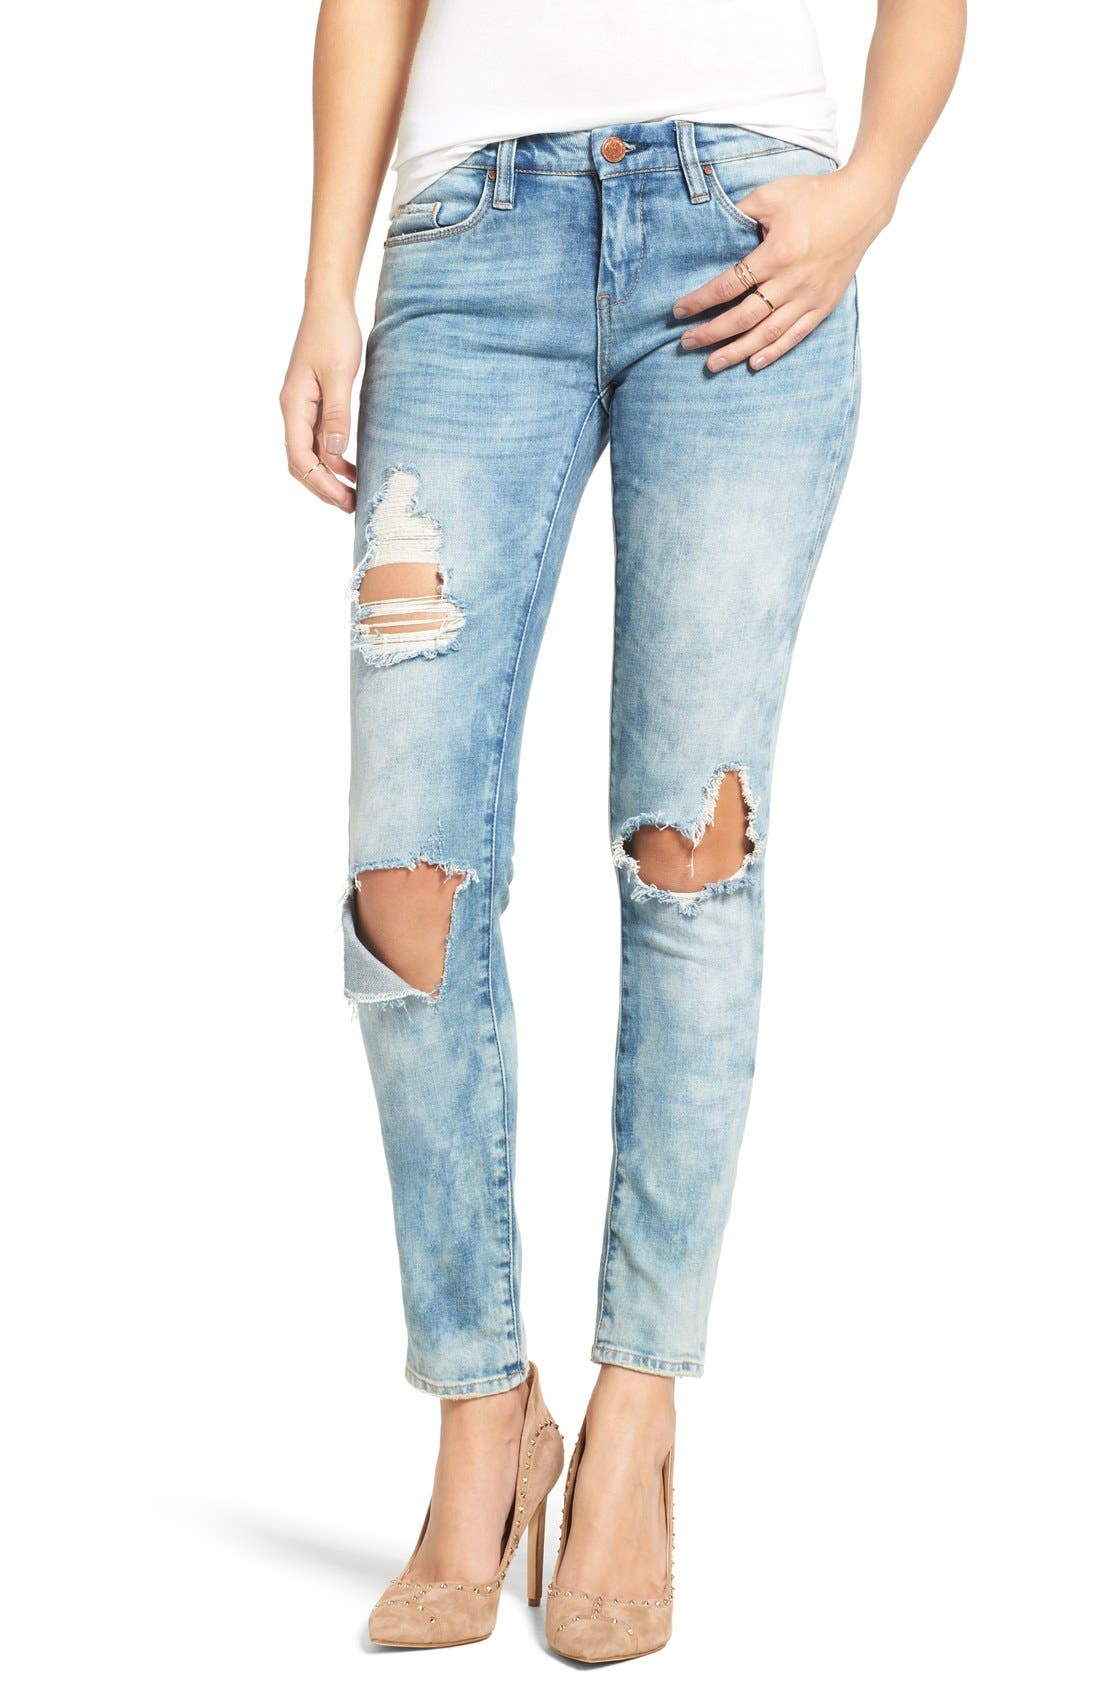 Main Image - BLANKNYC Good Vibes Distressed Skinny Jeans (Medium Wash Blue)